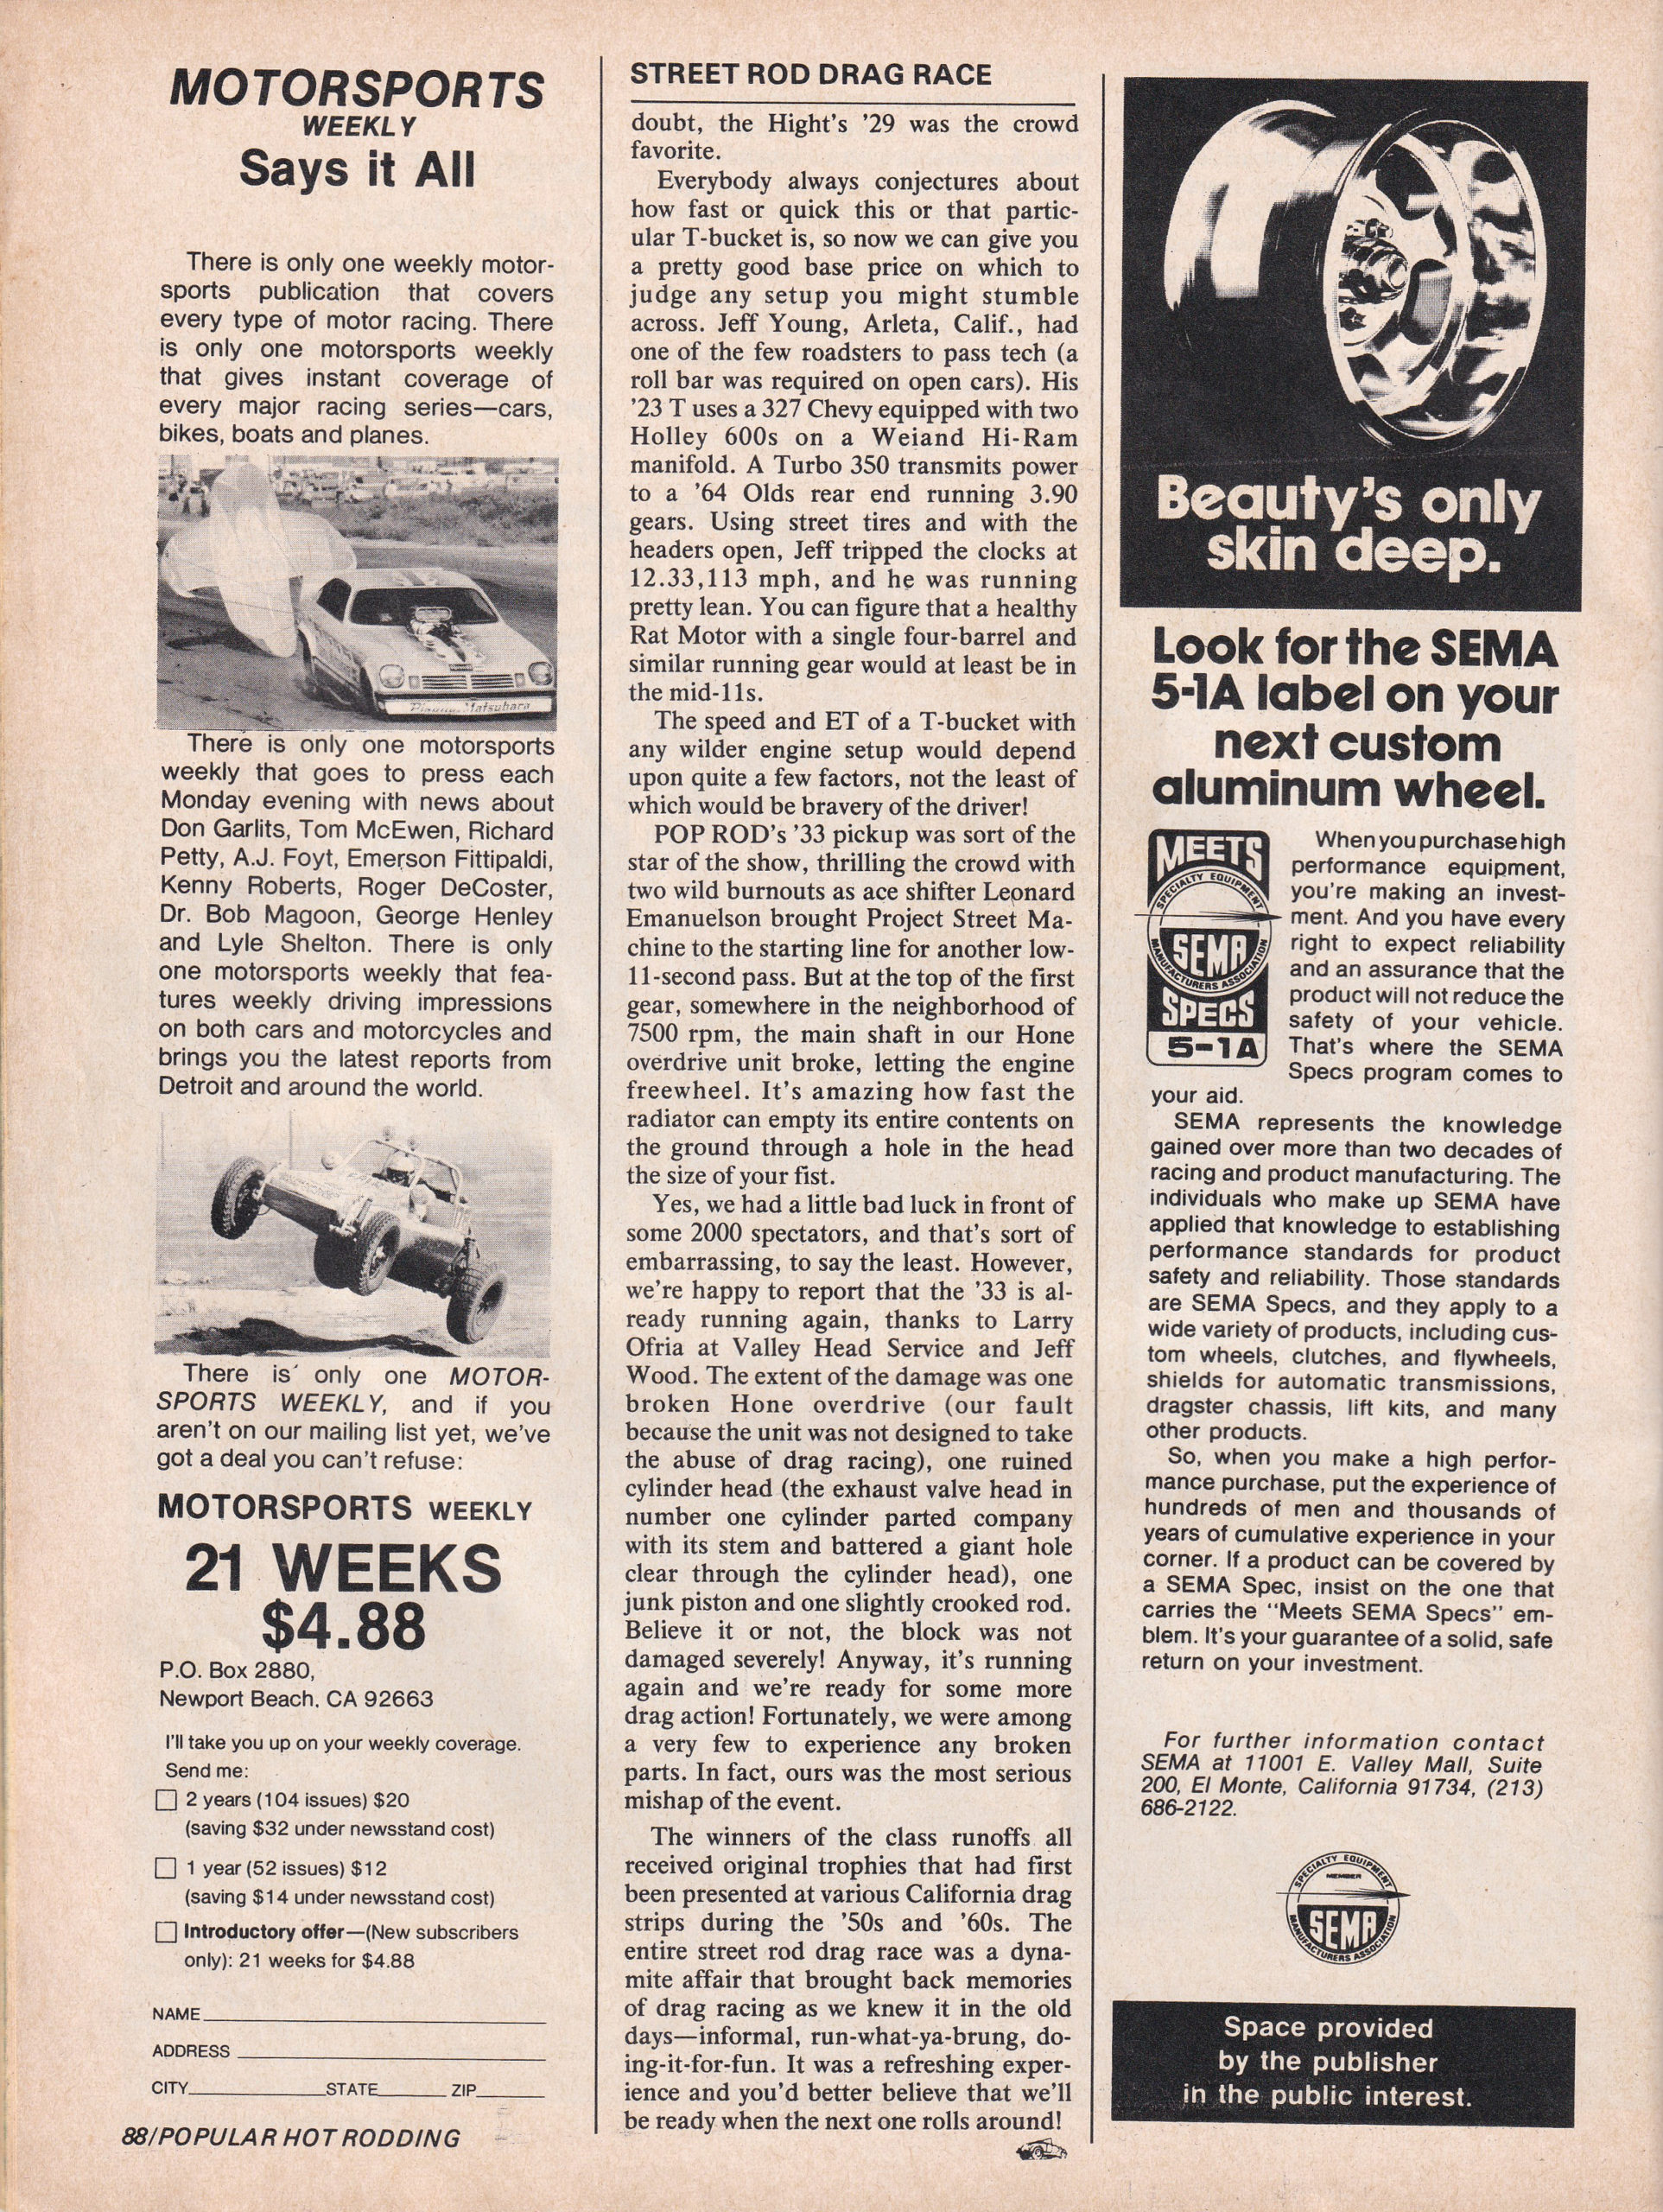 Street Rod Drag Race section from October 1975 issue of Popular Hot Rodding, page 5.